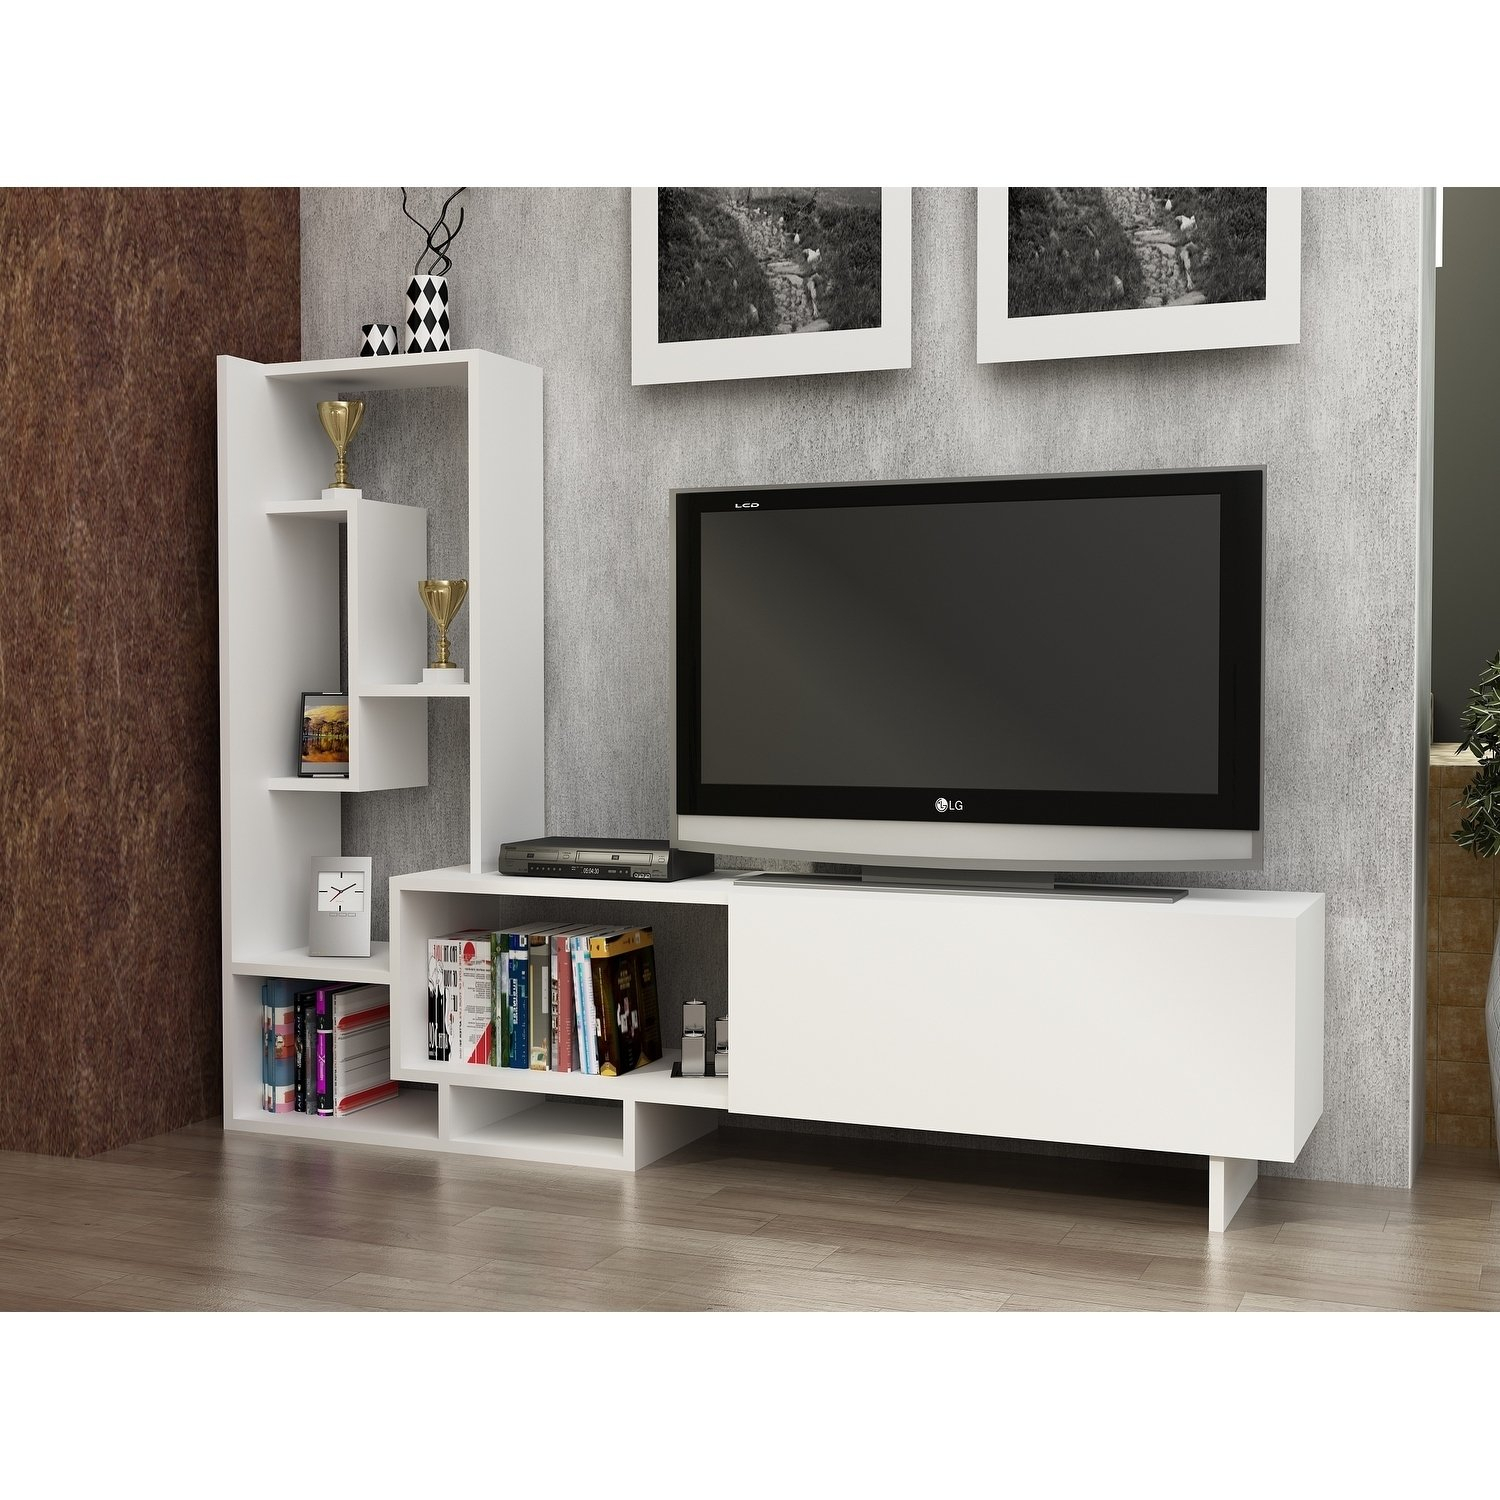 Shop Decorotika Pegai White Wood 60-Inch Tv Stand With Bookshelves within Century Blue 60 Inch Tv Stands (Image 22 of 30)